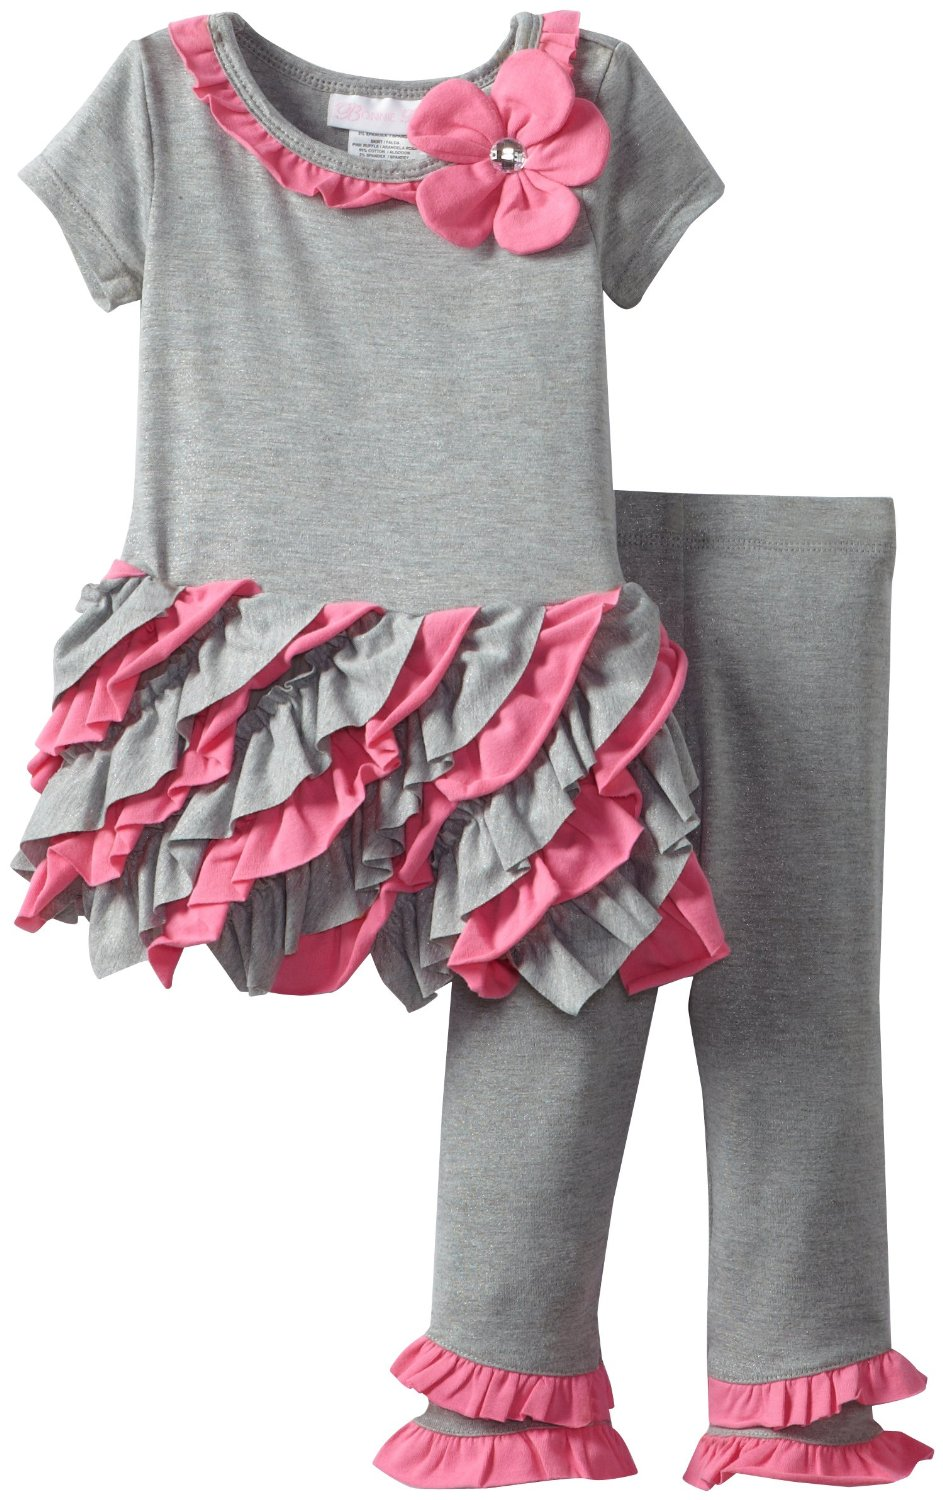 Newborn Infant Toddler Girl's Pink Ruffled Legging Set